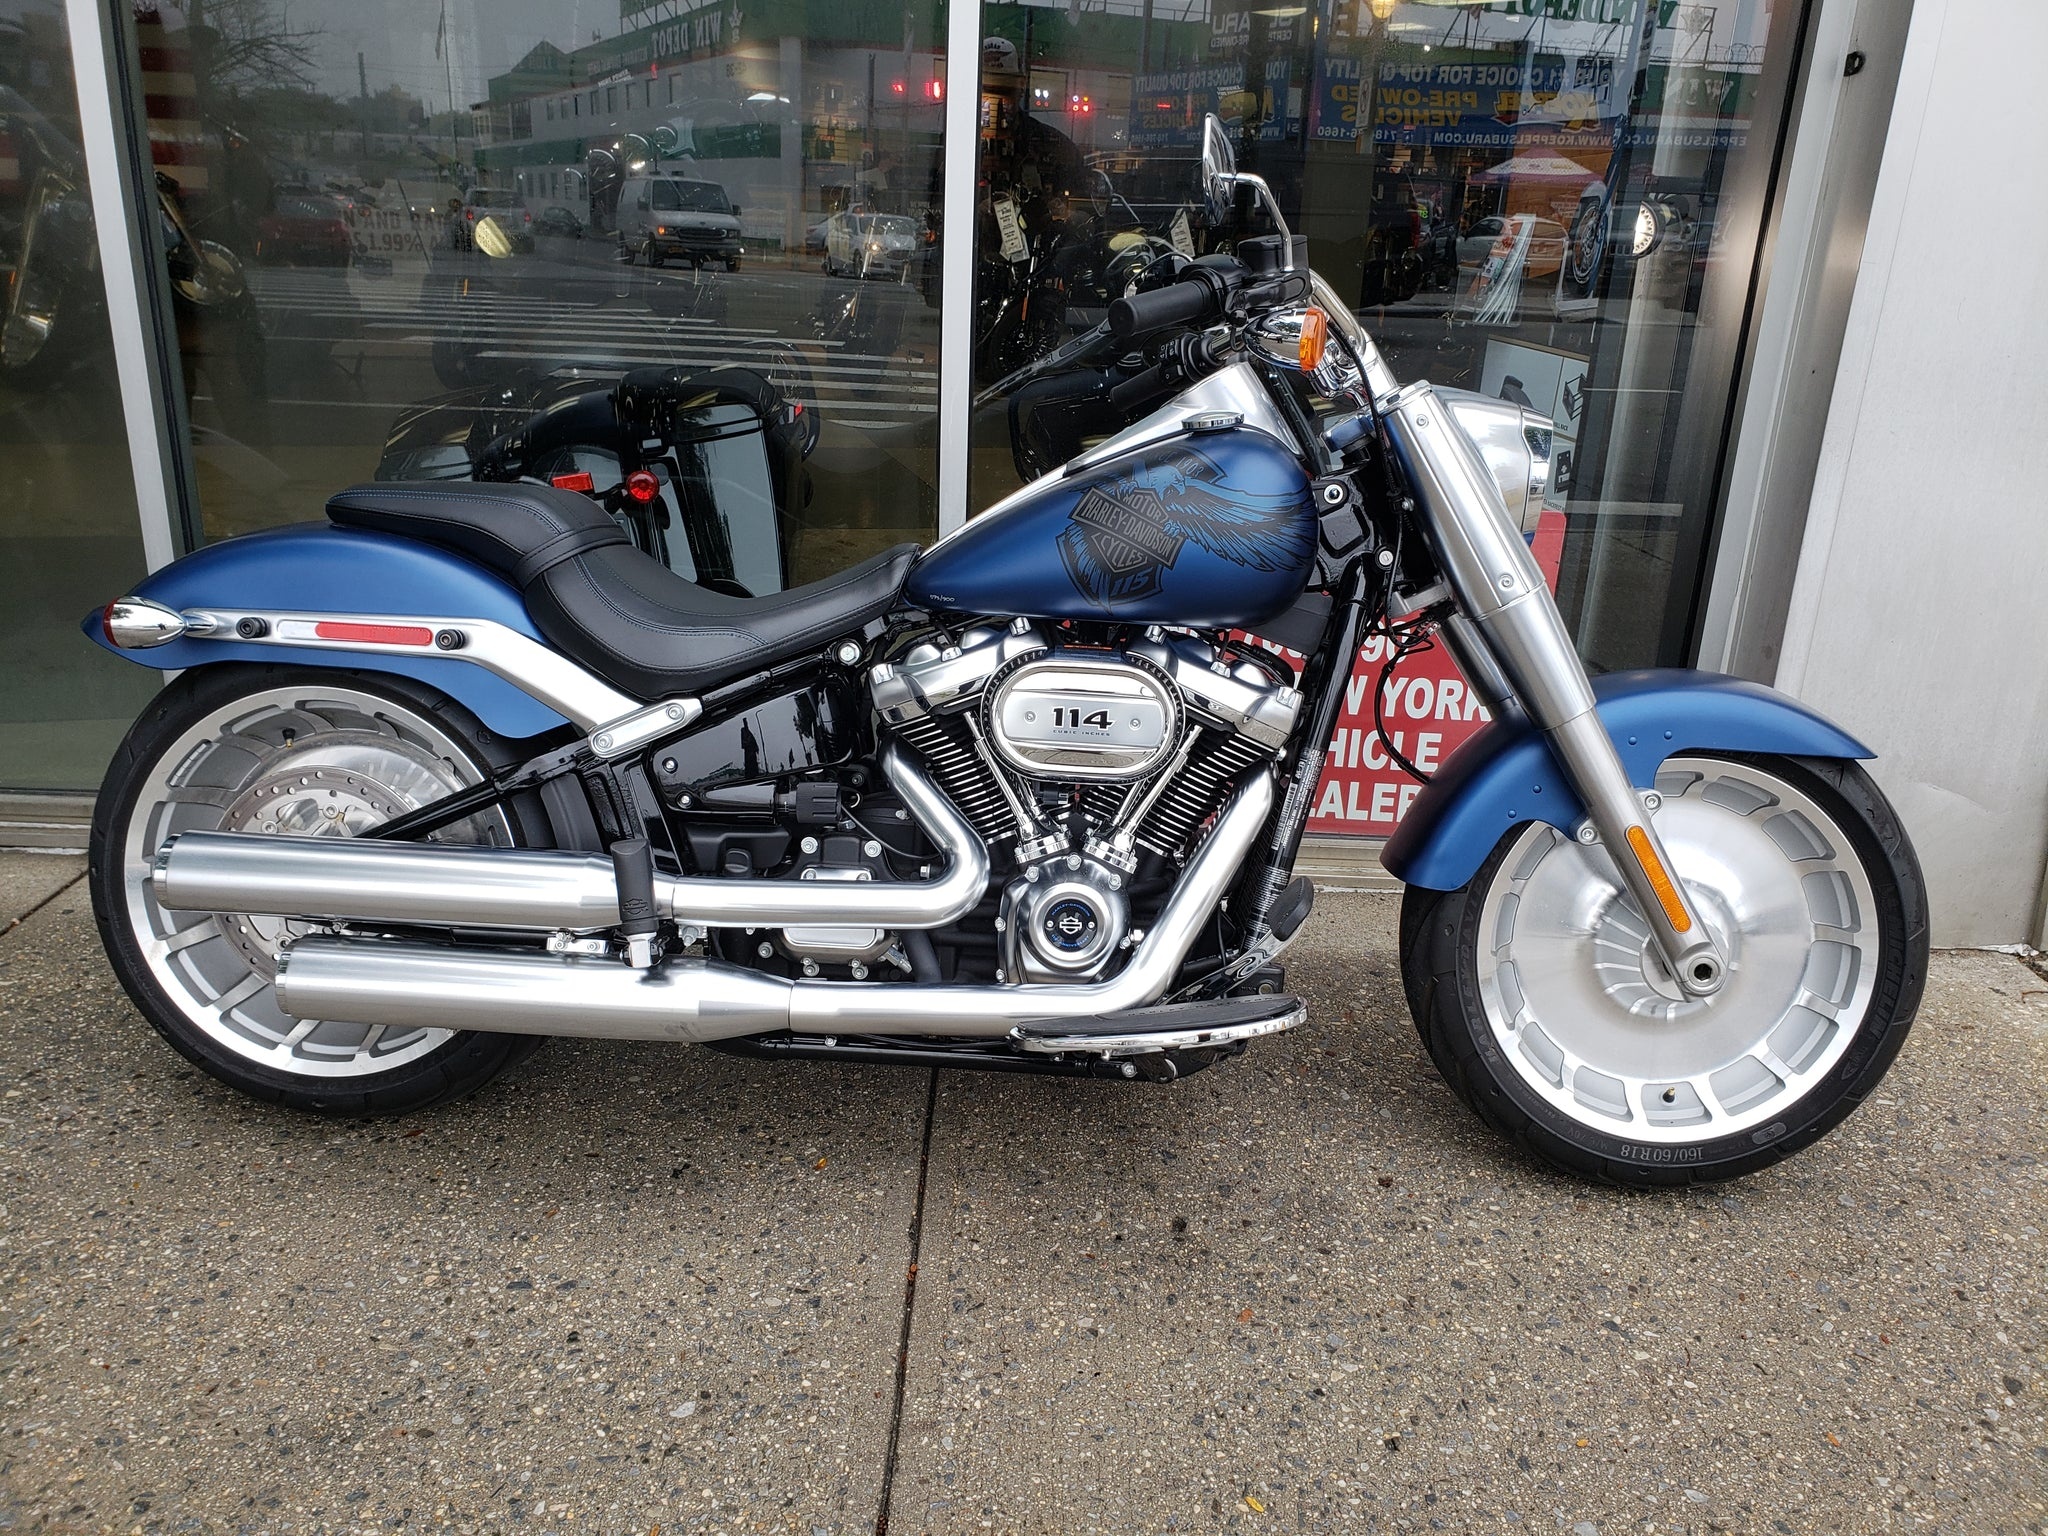 Harley Davidson Of New York City Homepage Pink Motorcycle Employee Pricing On All Pre Owned Bikes